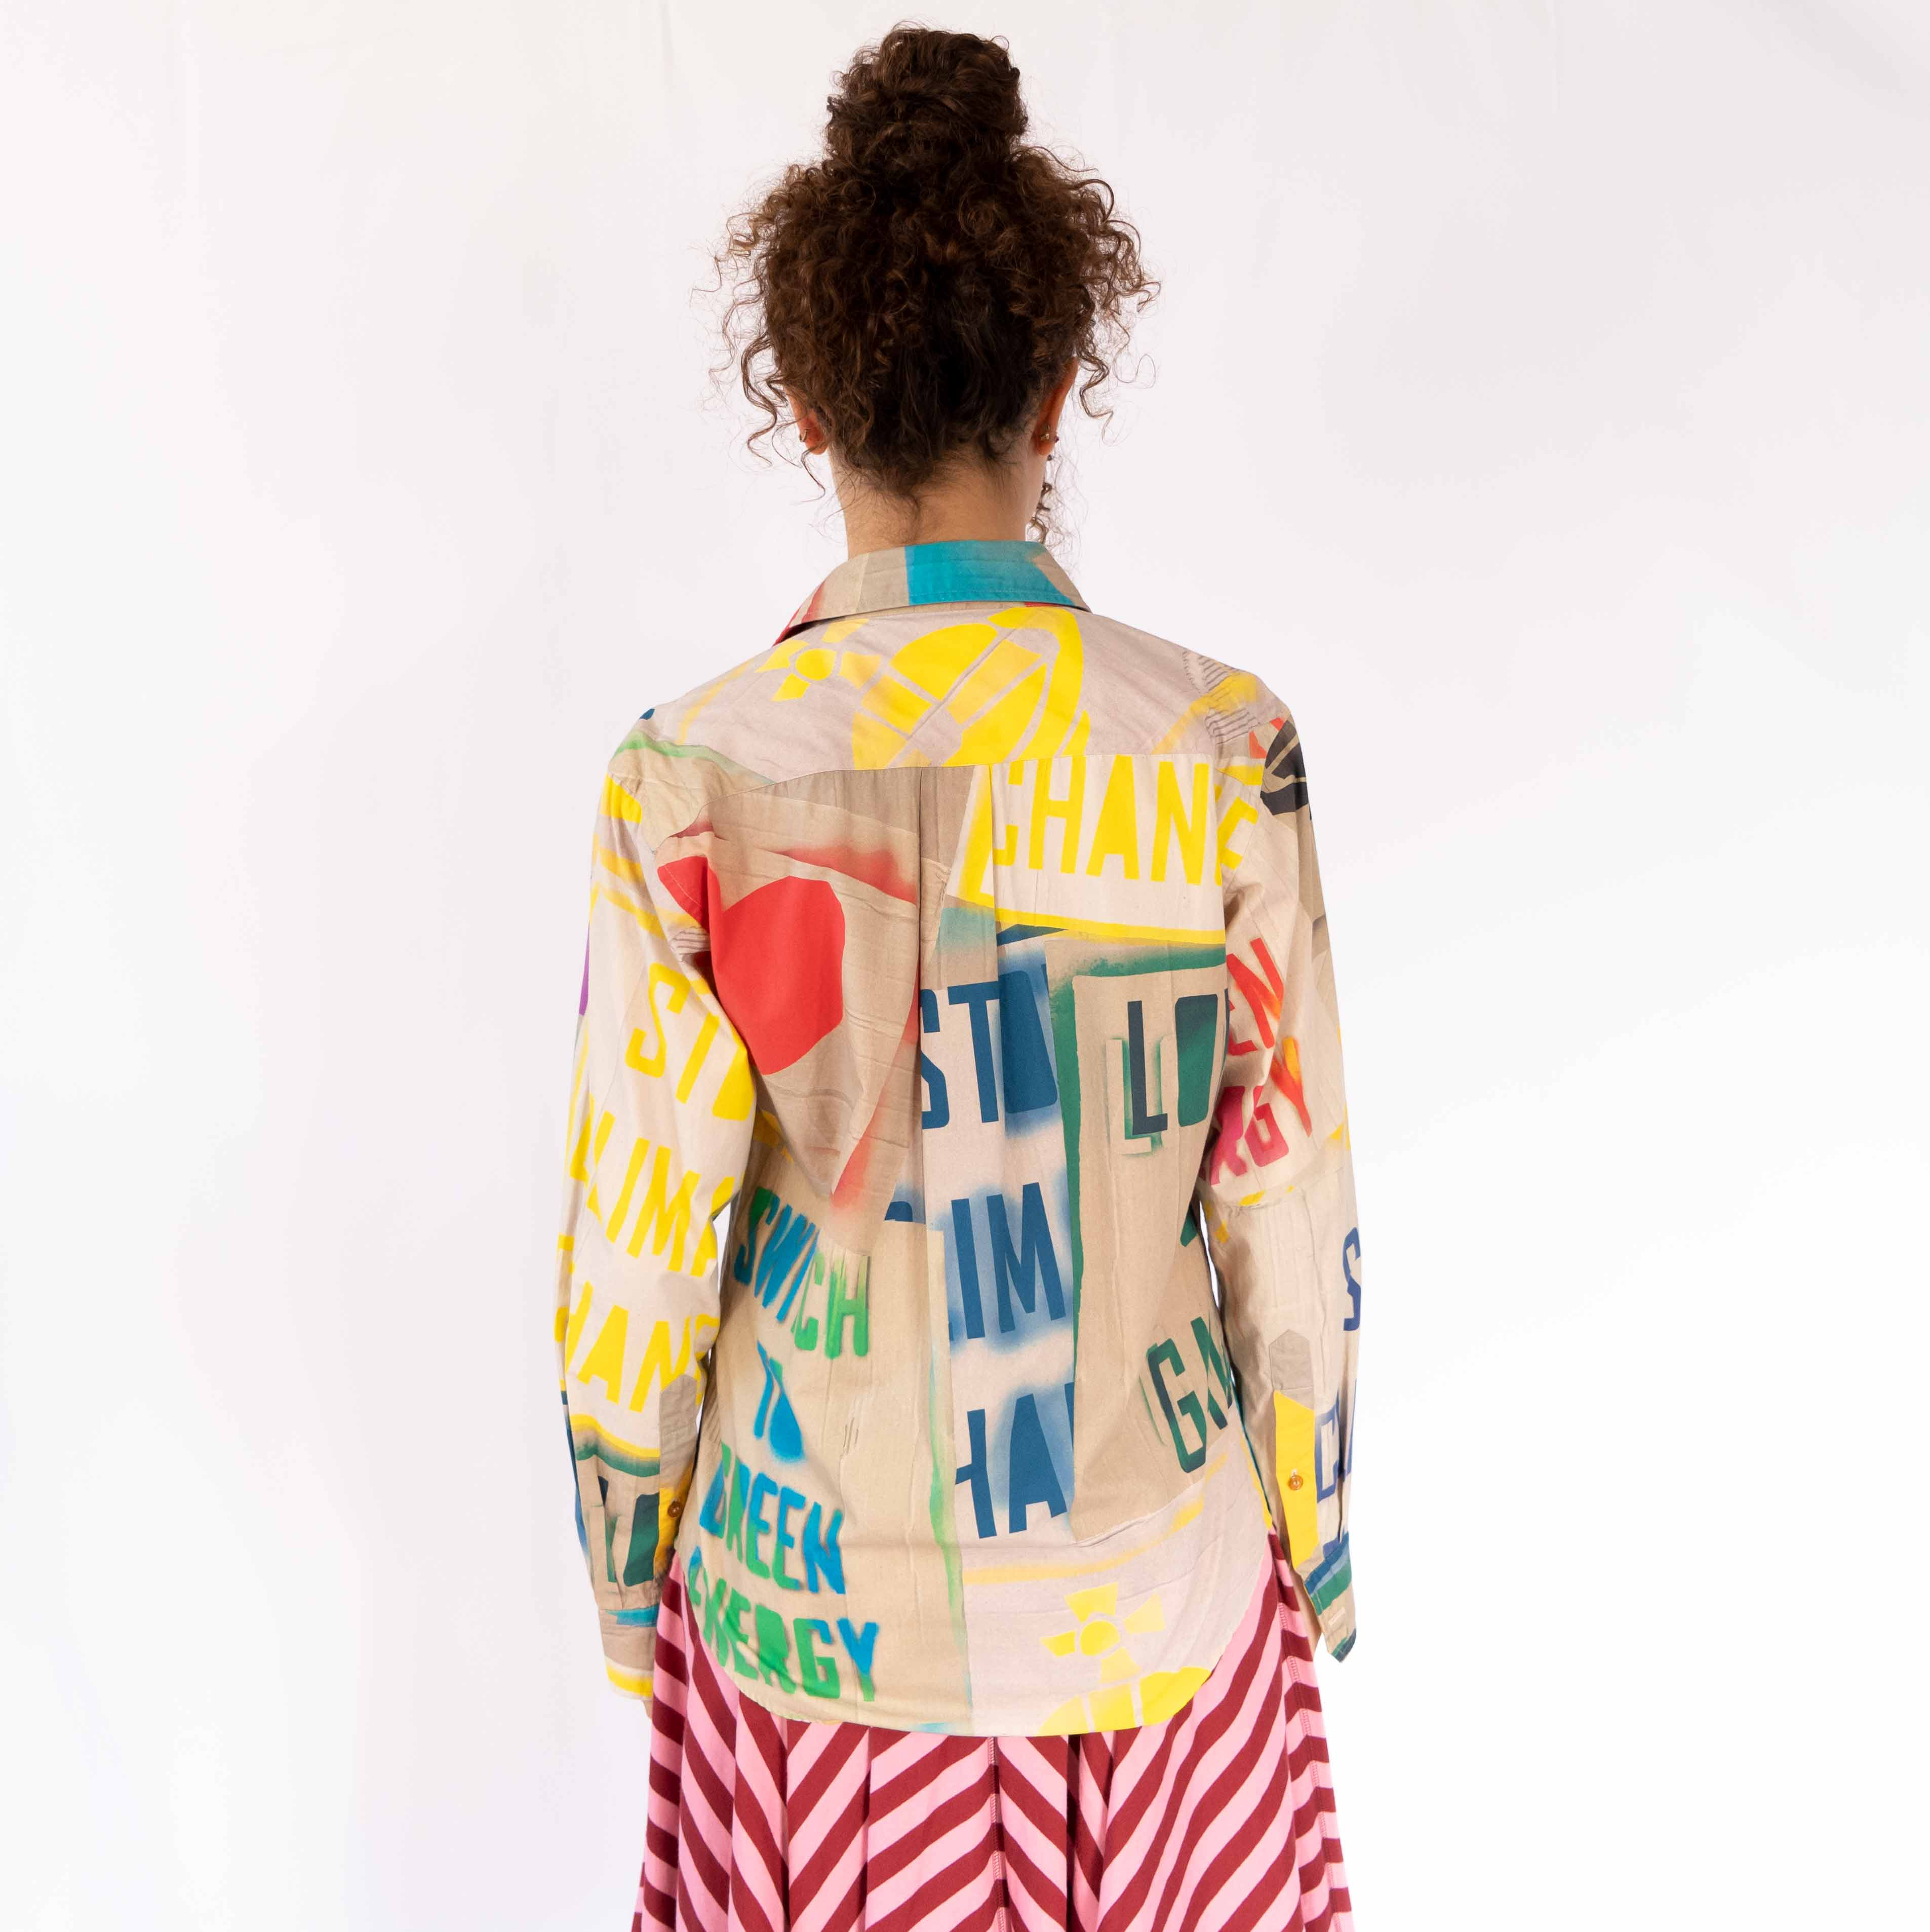 The coolest button up we've seen in a long time. This graphic shirt pairs perfectly with a sexy skirt or a pair of slacks.